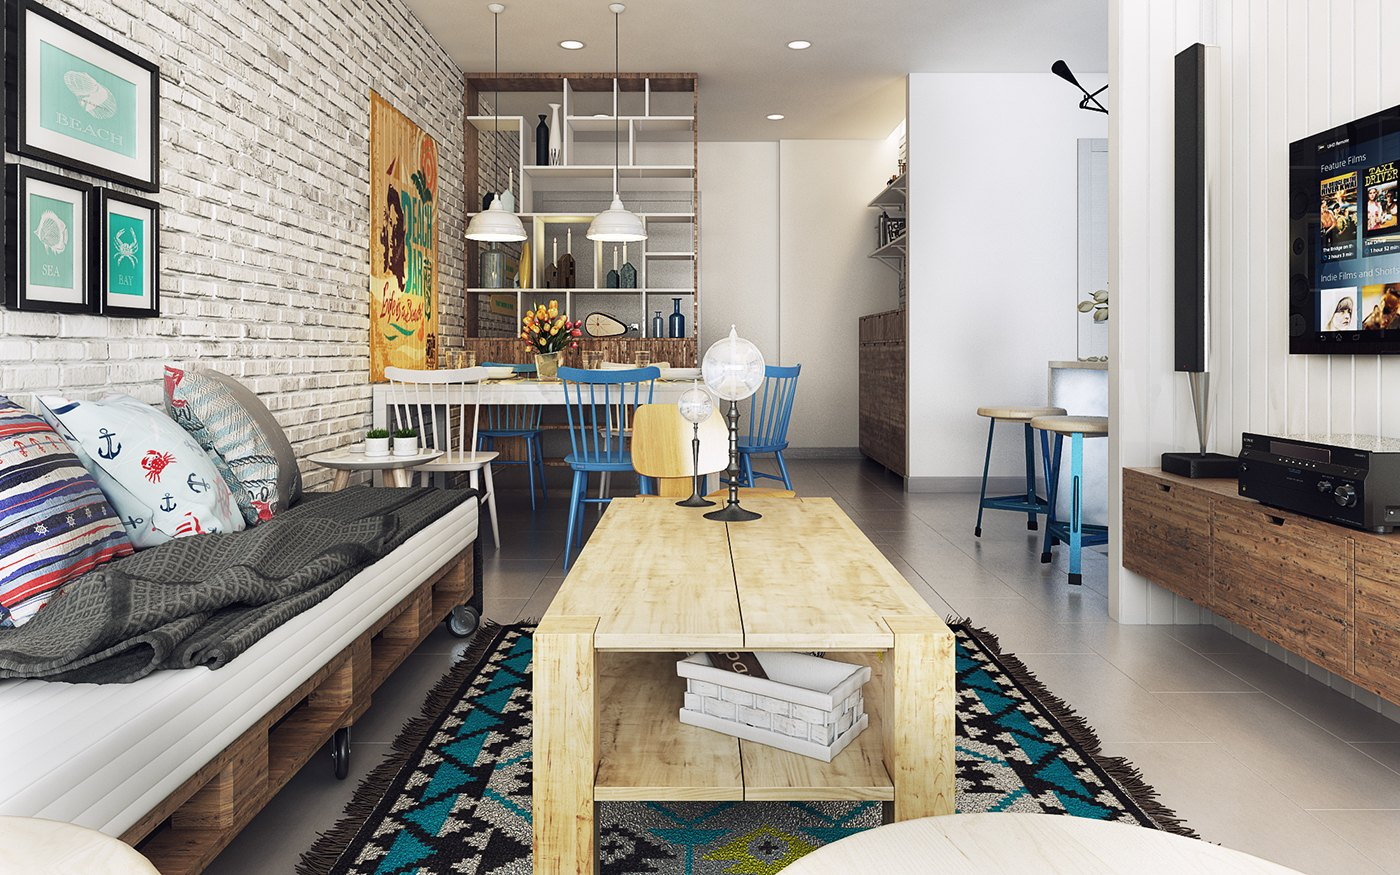 Nautical Nordic Theme - 10 stunning apartments that show off the beauty of nordic interior design